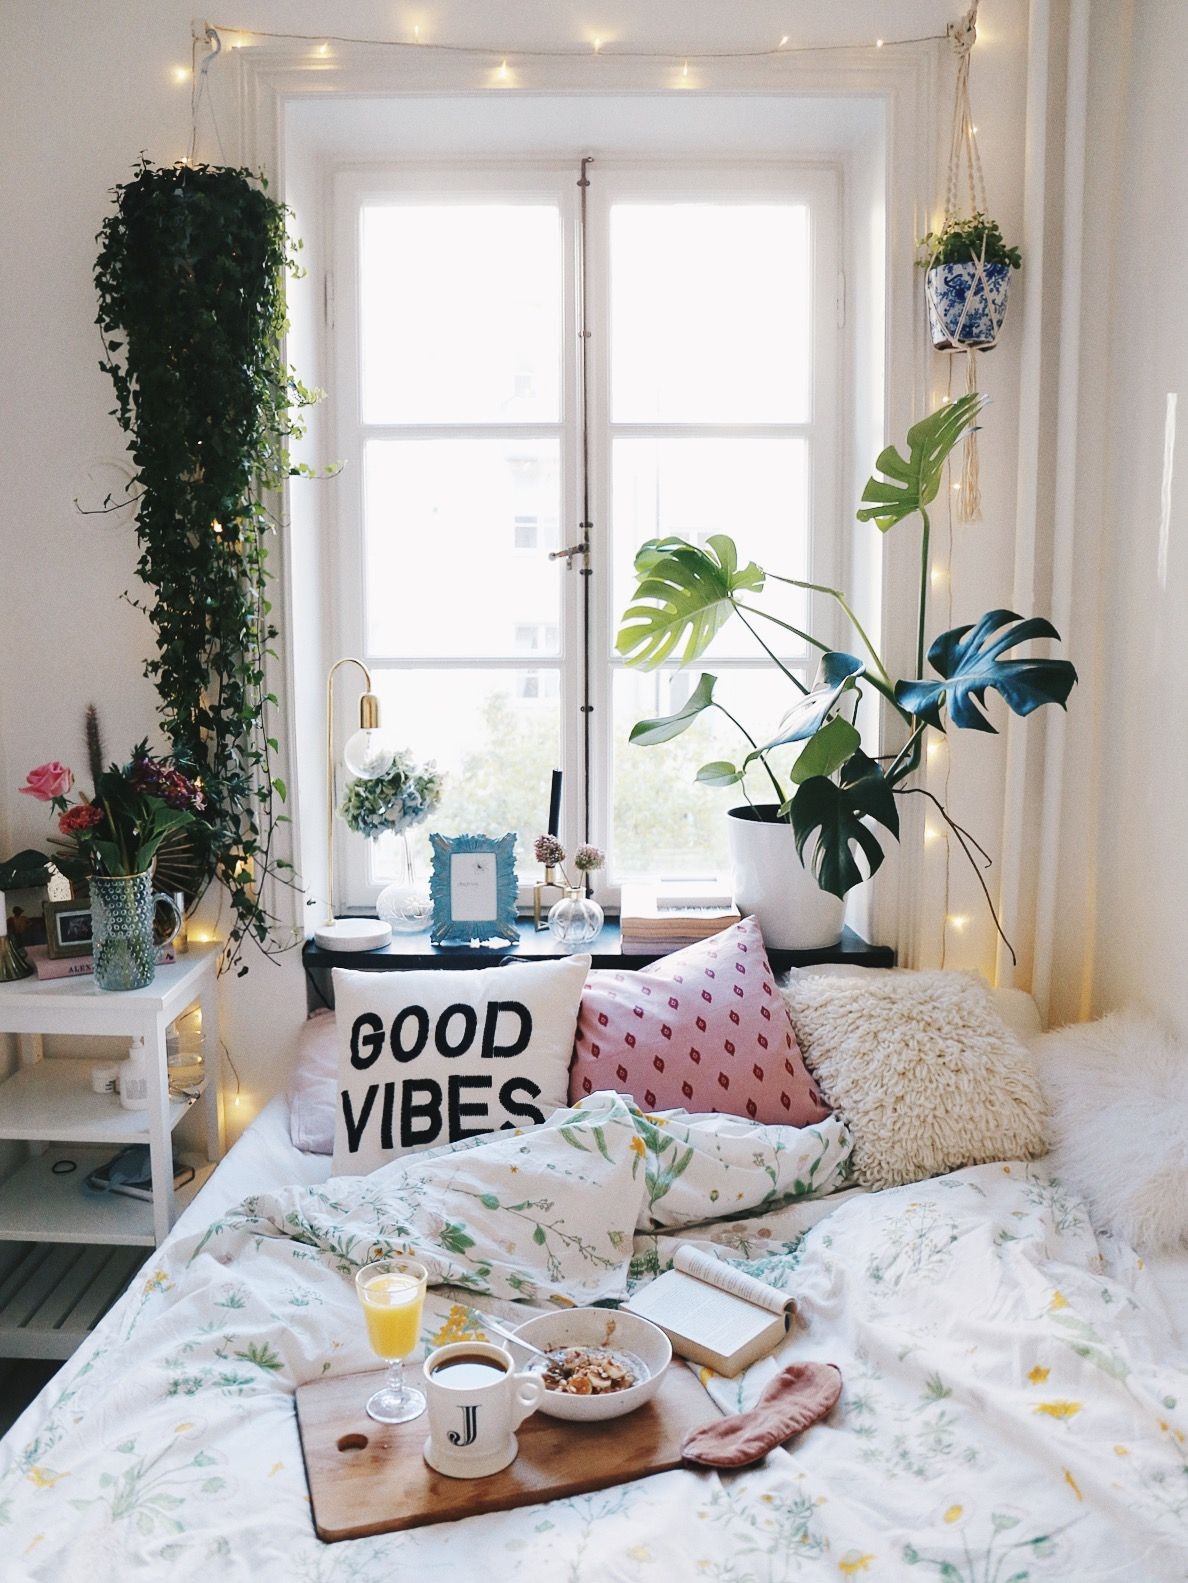 josefin dahlberg places pinterest bedrooms room and room cosy bedroom with plants and urban outfitters accessories